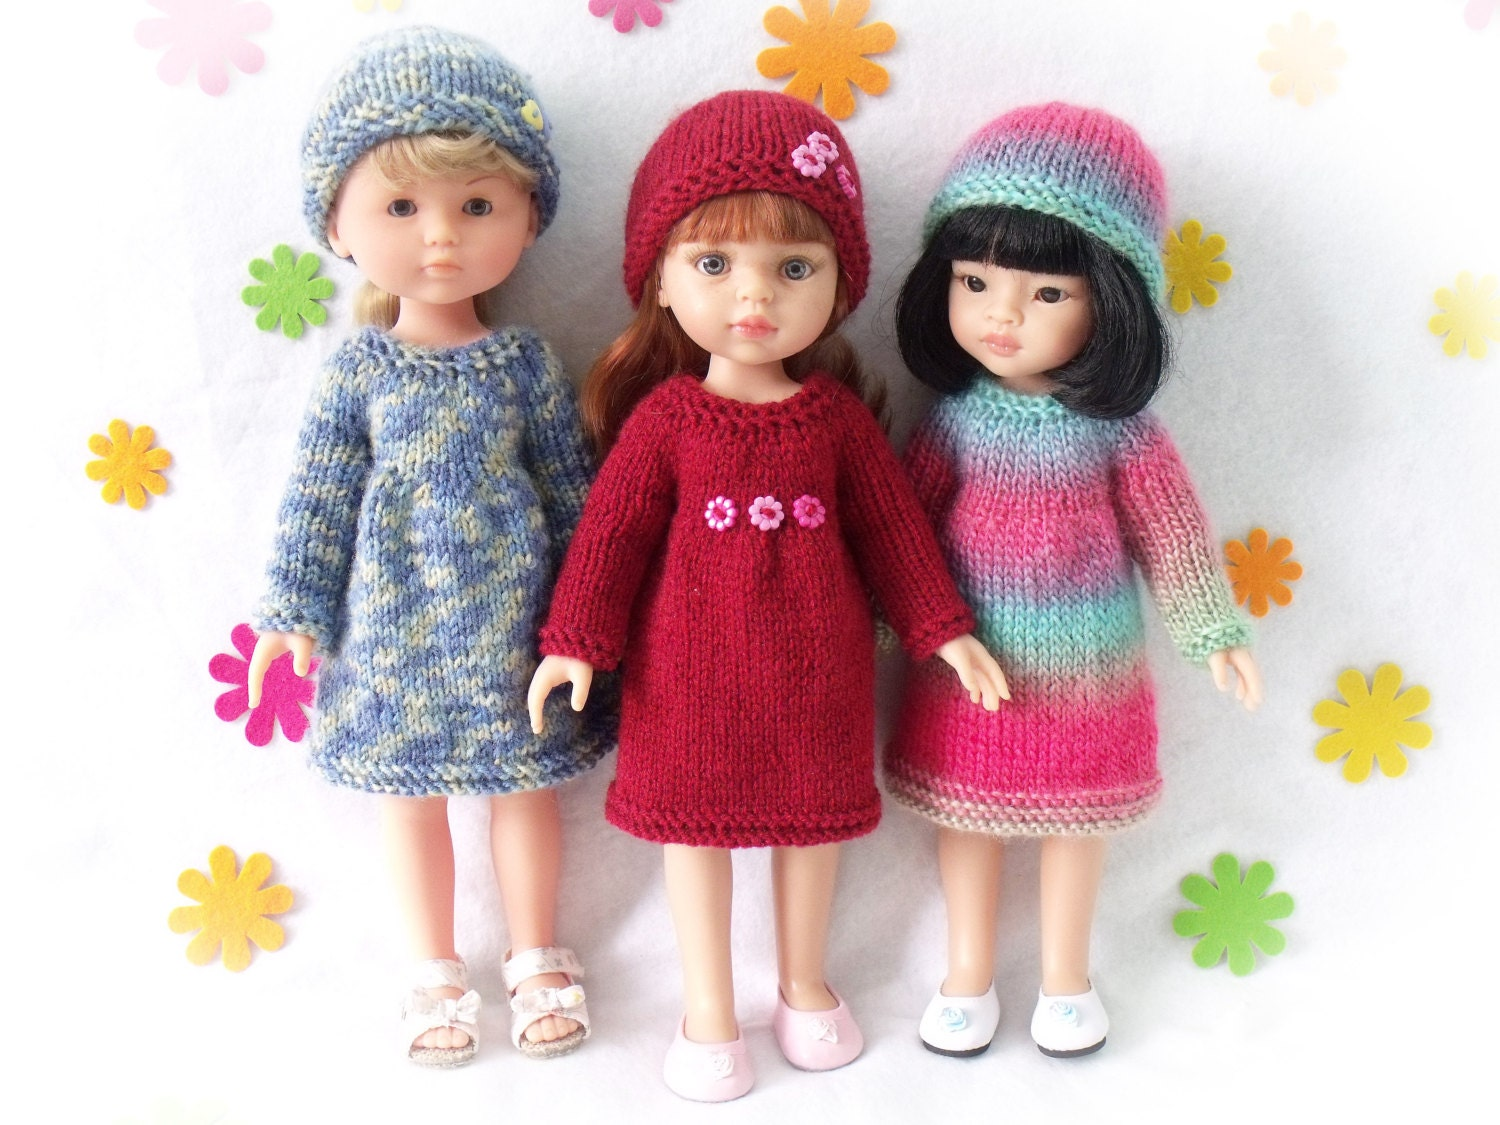 Knitting pattern for Dress and Hat for Paola Reina doll